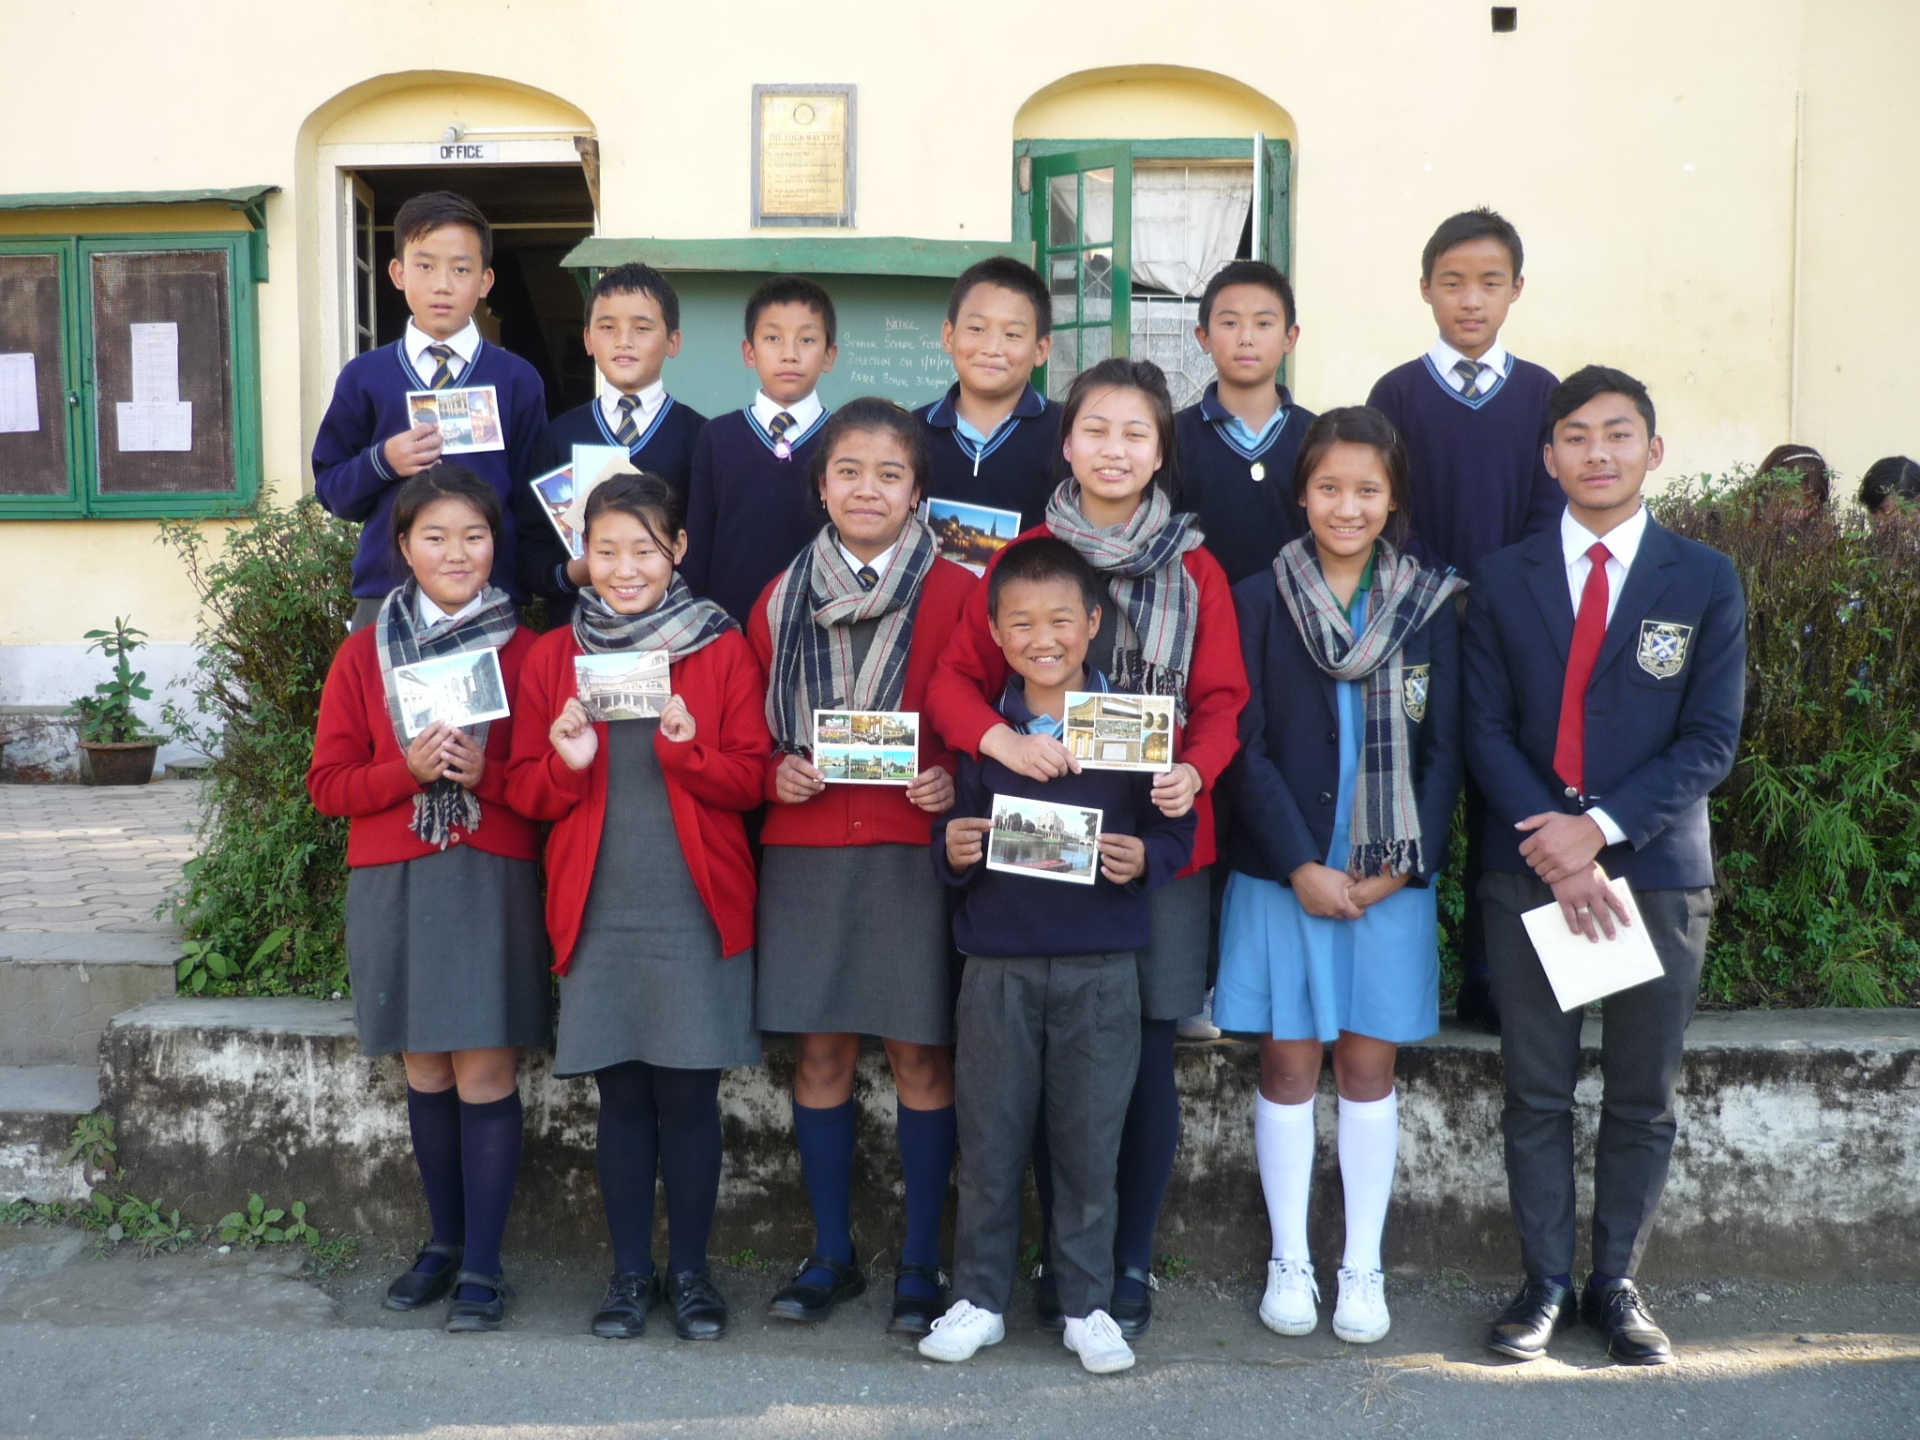 2017: The pupils at Dr Graham's Homes